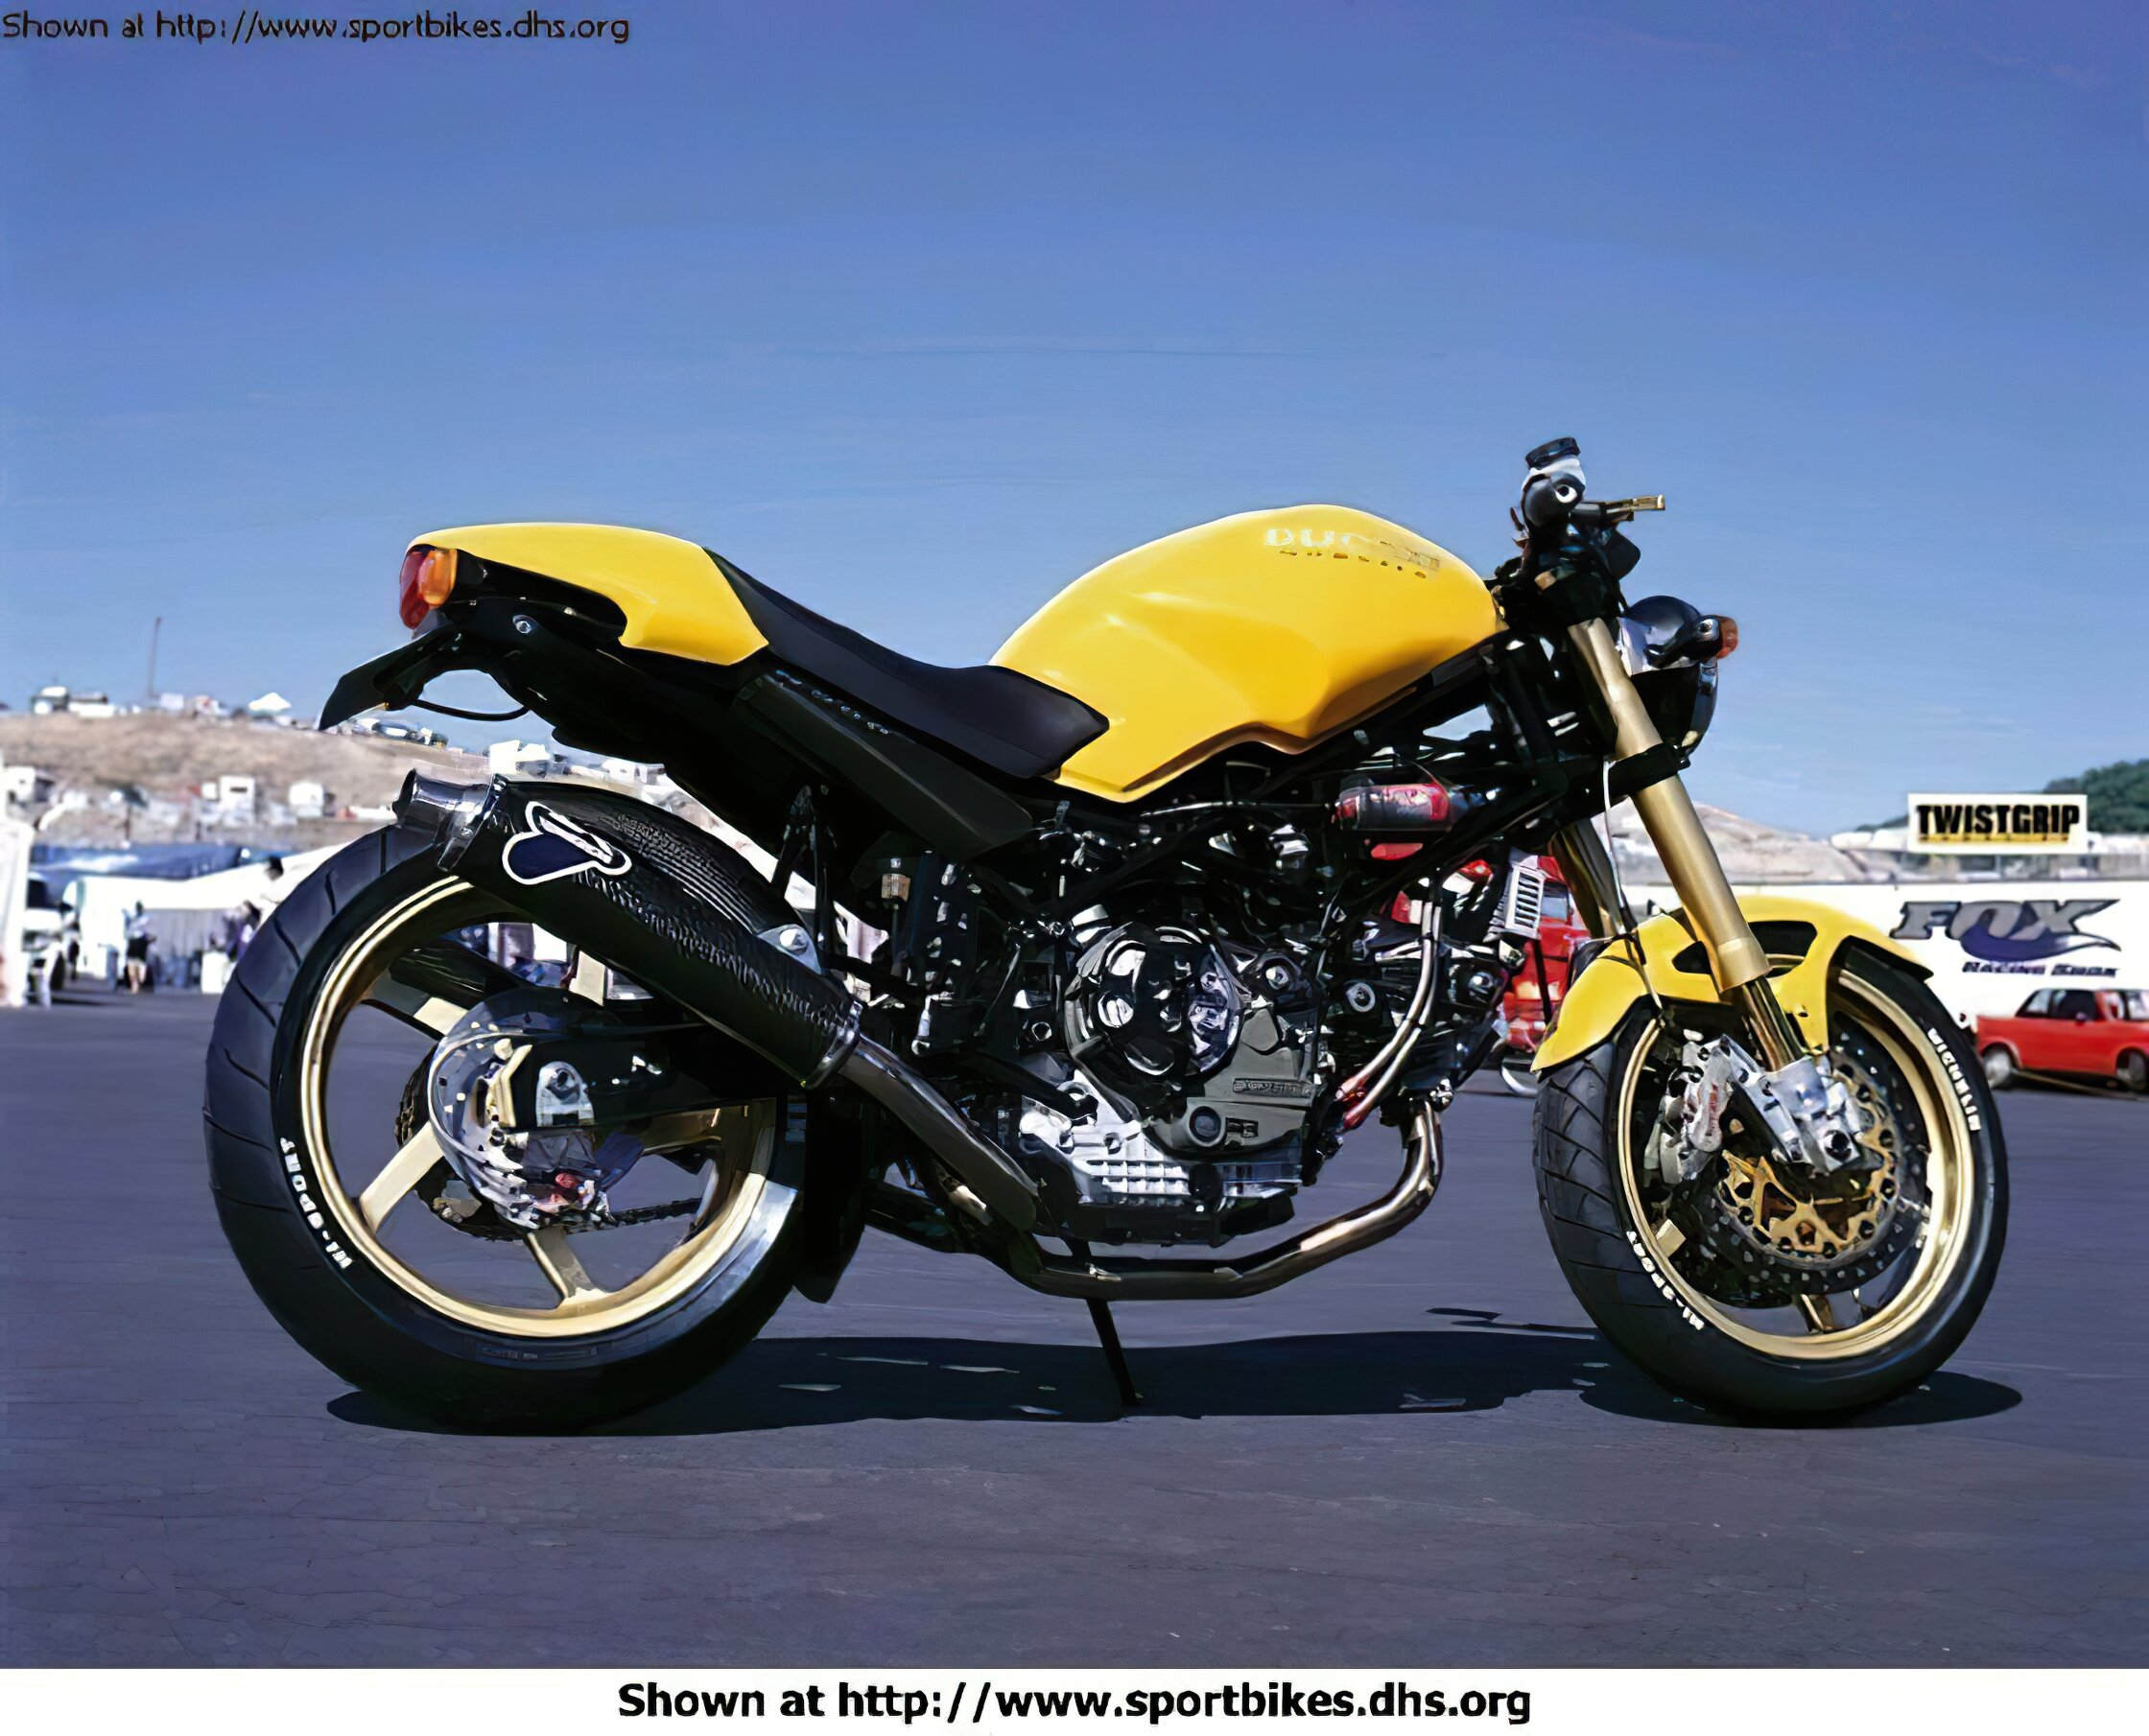 Ducati Monster Models - ID: 2070